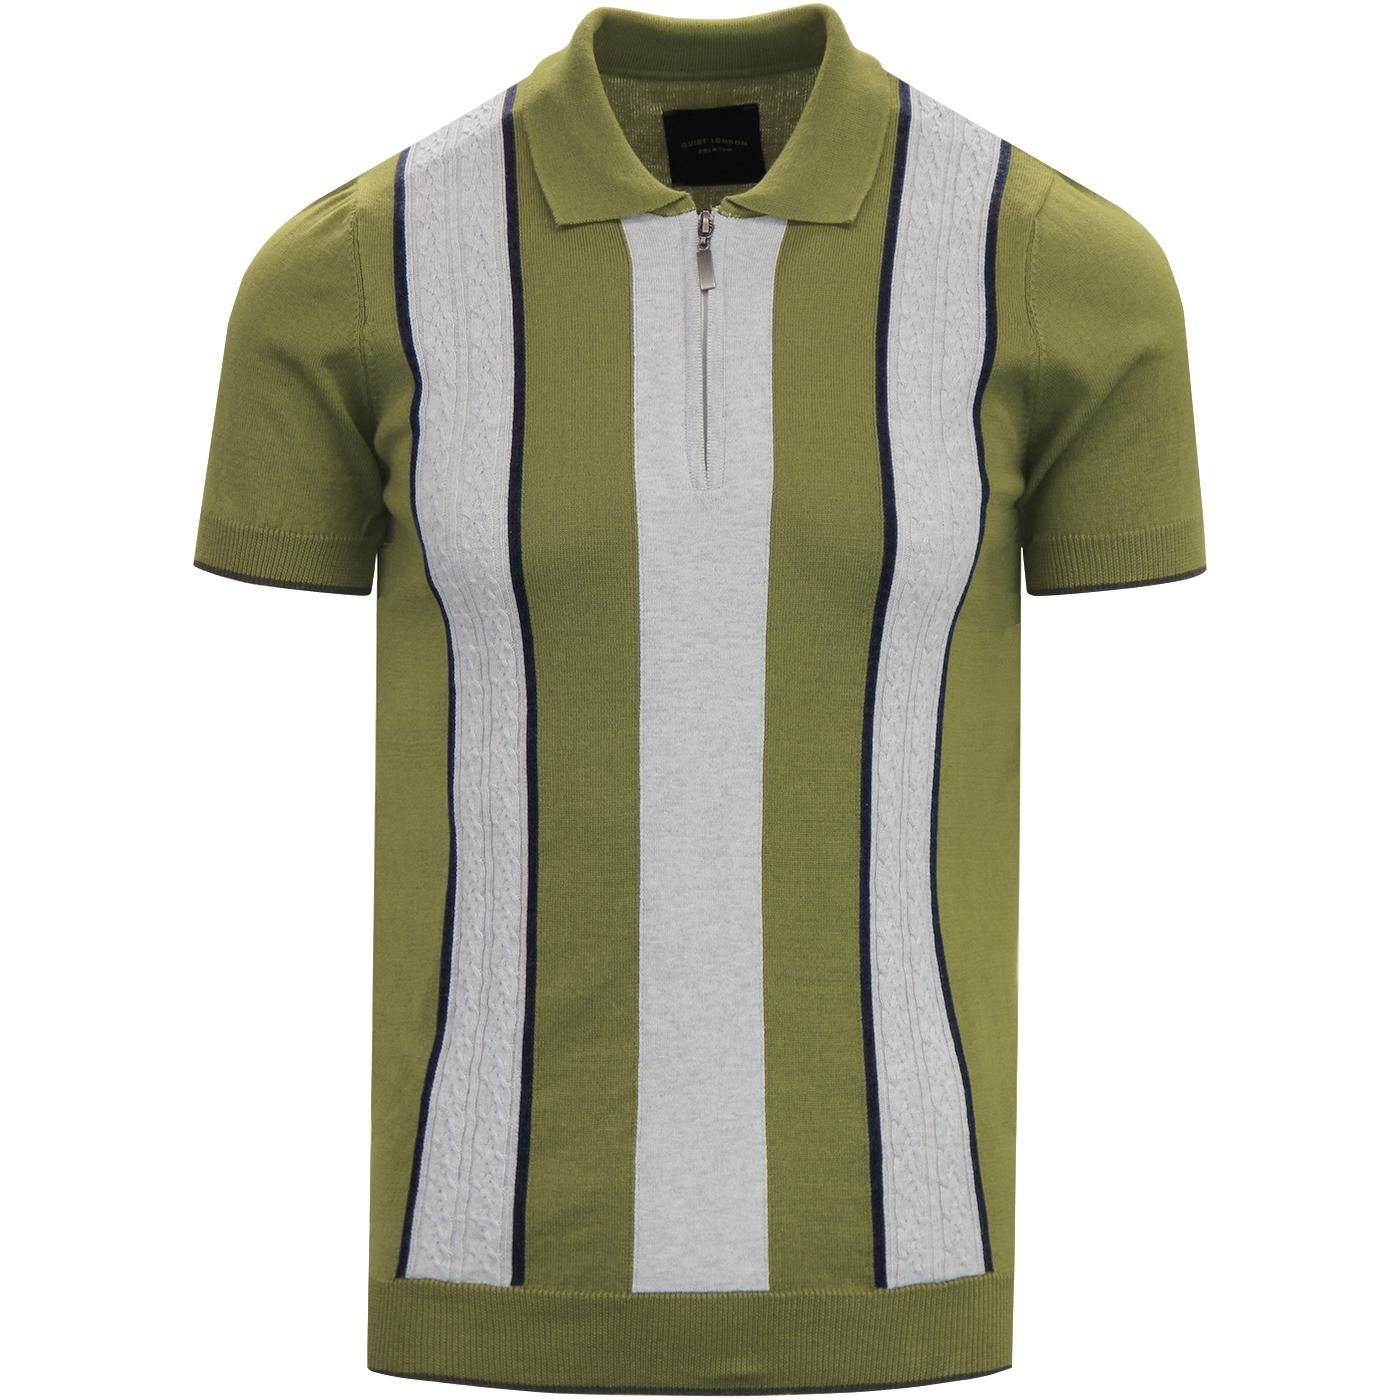 0eafe1430 GUIDE LONDON Cable Knit Panel Mod Polo Shirt GREEN in 2019